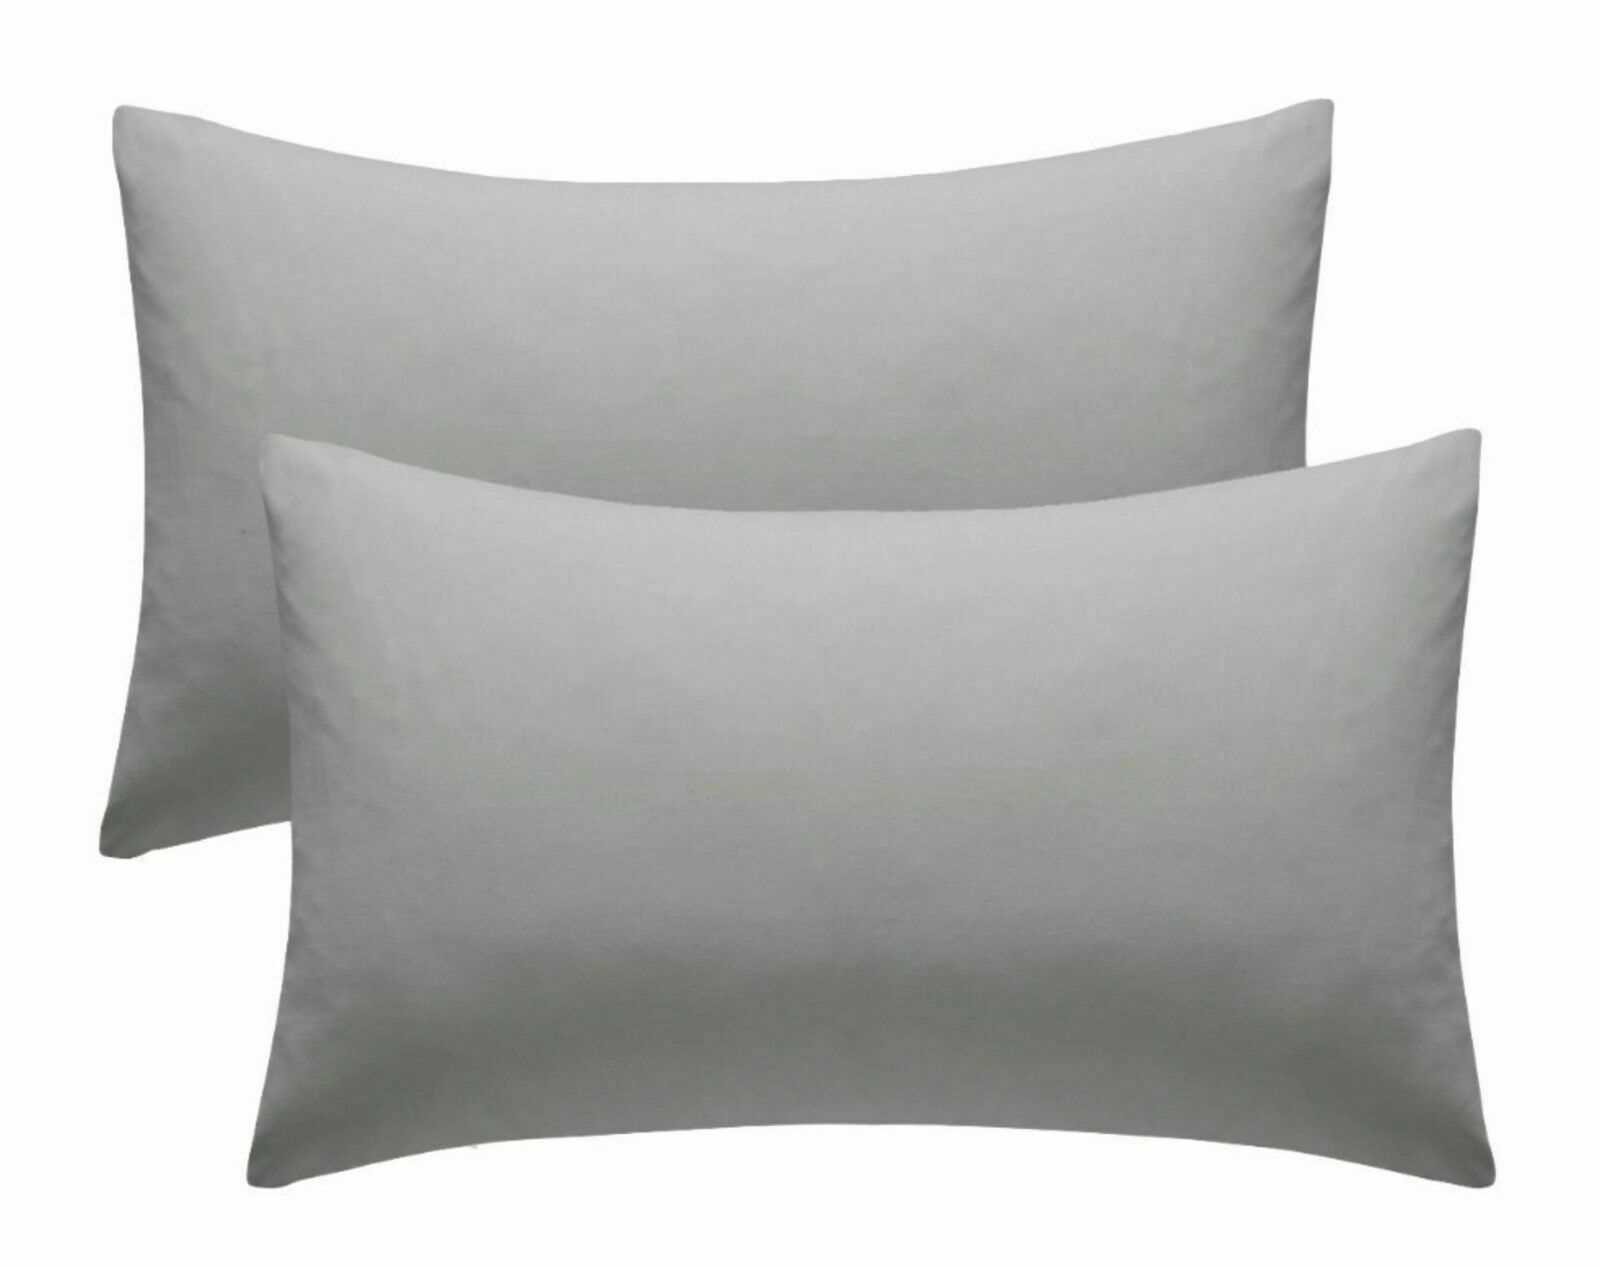 Grey Plain Pillow Cases Cotton Pair Housewife Case Cover 100% Luxury Pack Covers